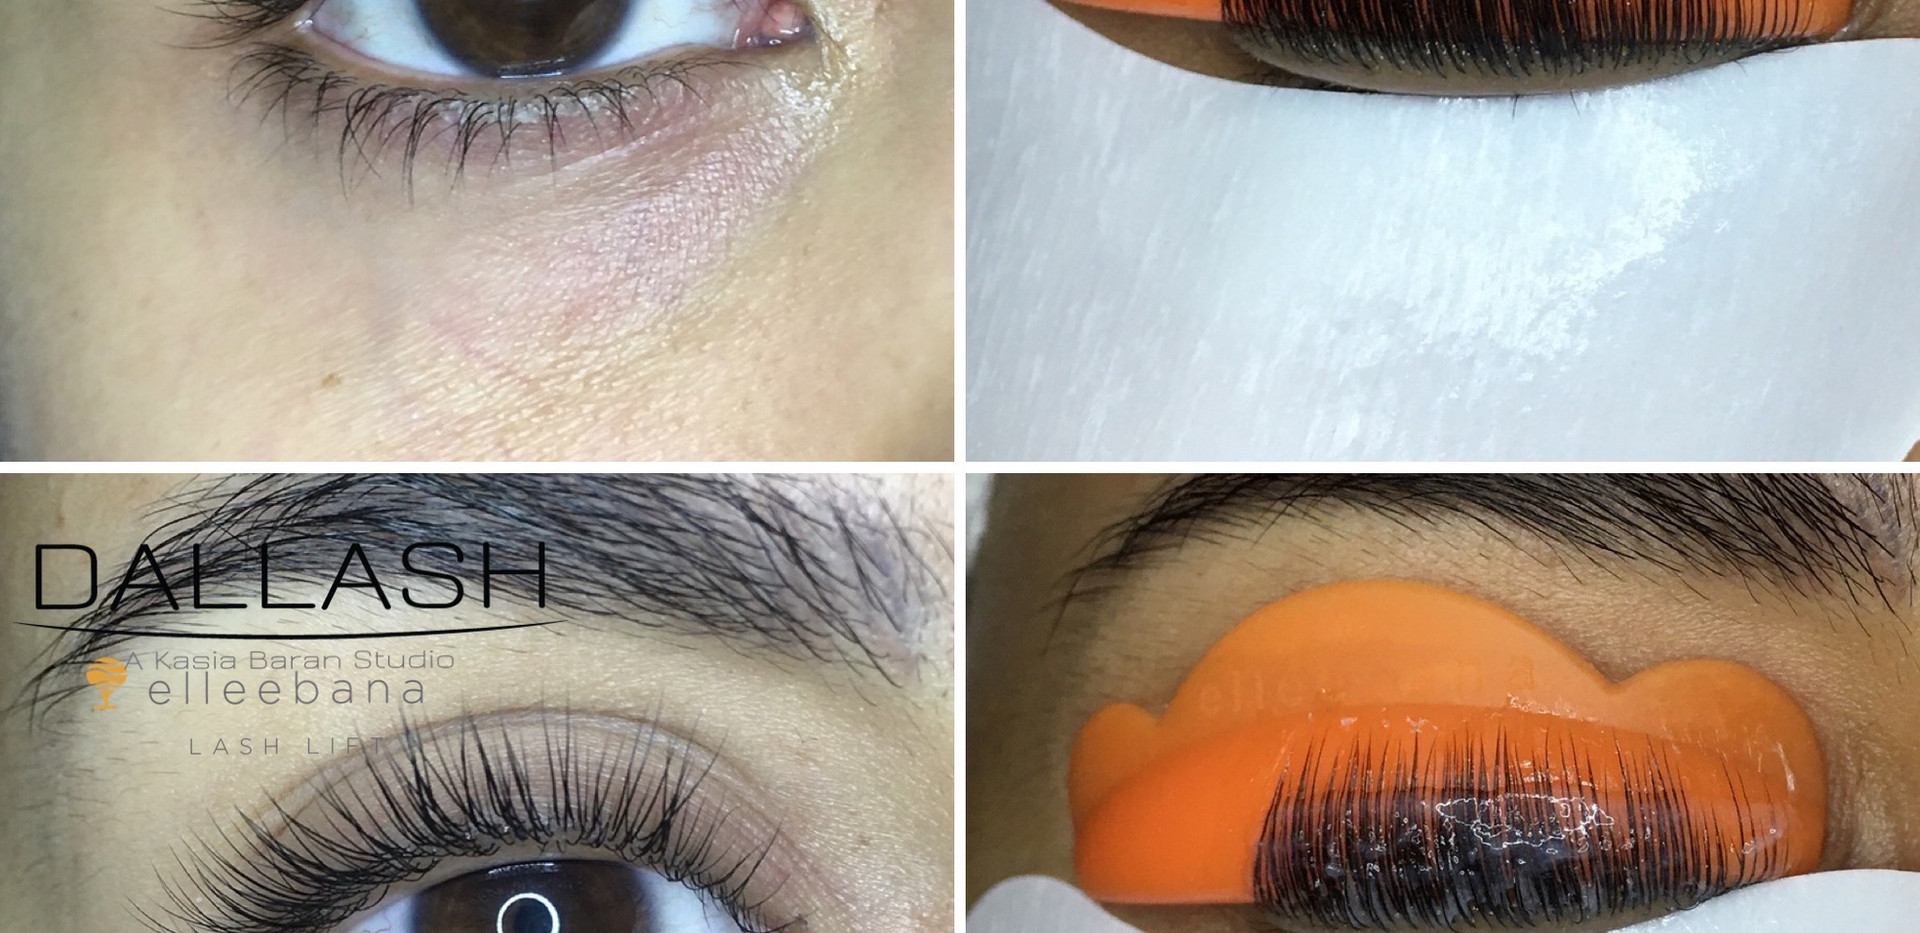 The EXTEMEi- lashlift-lashliftdallas-dal